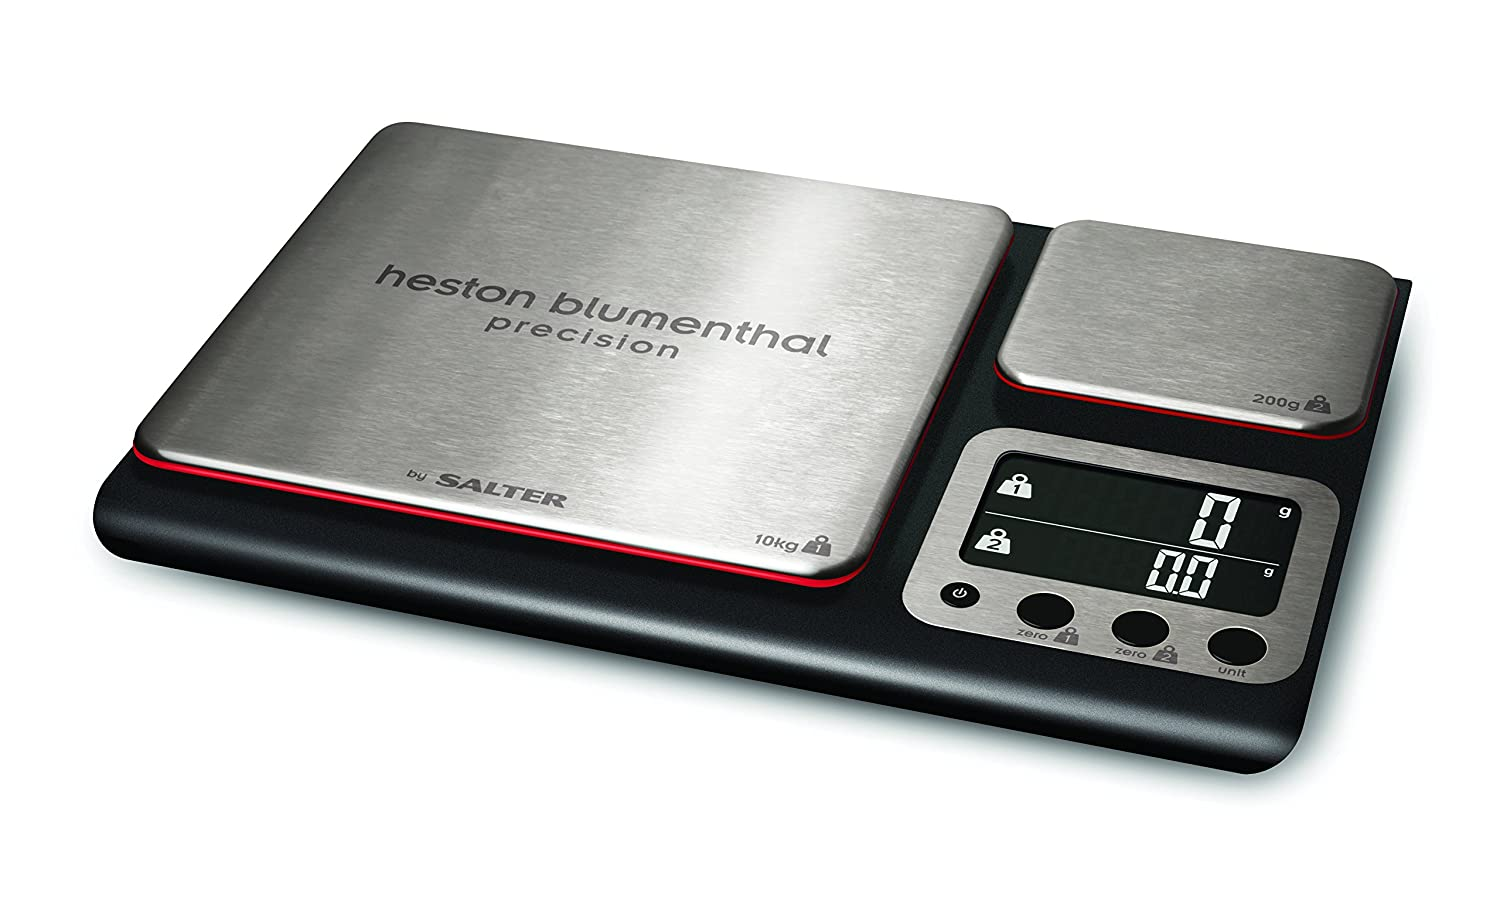 Heston Blumenthal Dual Platform Precision Scale by Salter, High Capacity 10kg and Ultimate Recipe Accuracy 200g Platforms, Stylish Kitchen Accessory with Digital Display, Measure in Metric and Imperial Weight and Volume for Liquids with Aquatronic Feature